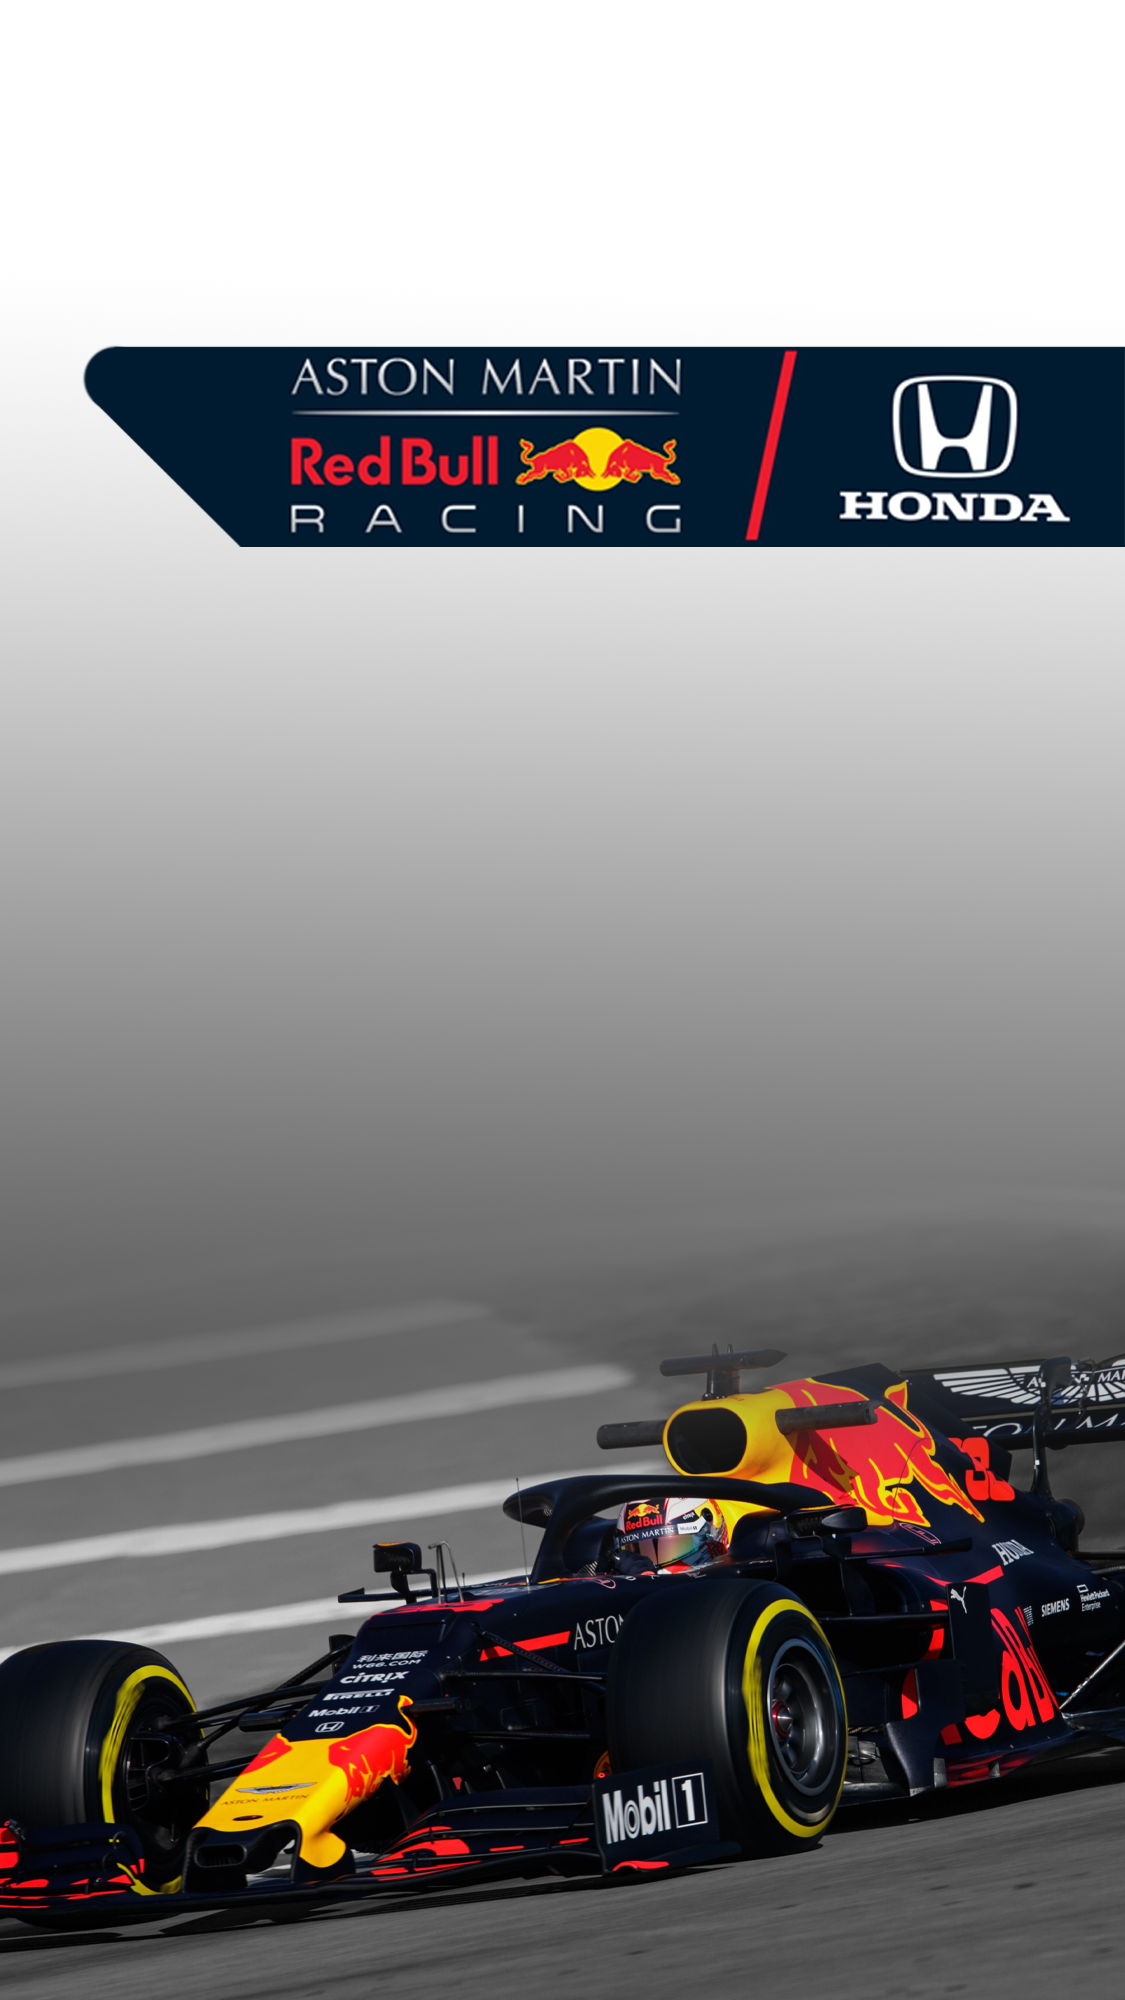 Red Bull Honda Wallpaper For Older Gen Iphones 1125 X 2000 Viralpics Red Bull Red Bull Racing Red Bull F1